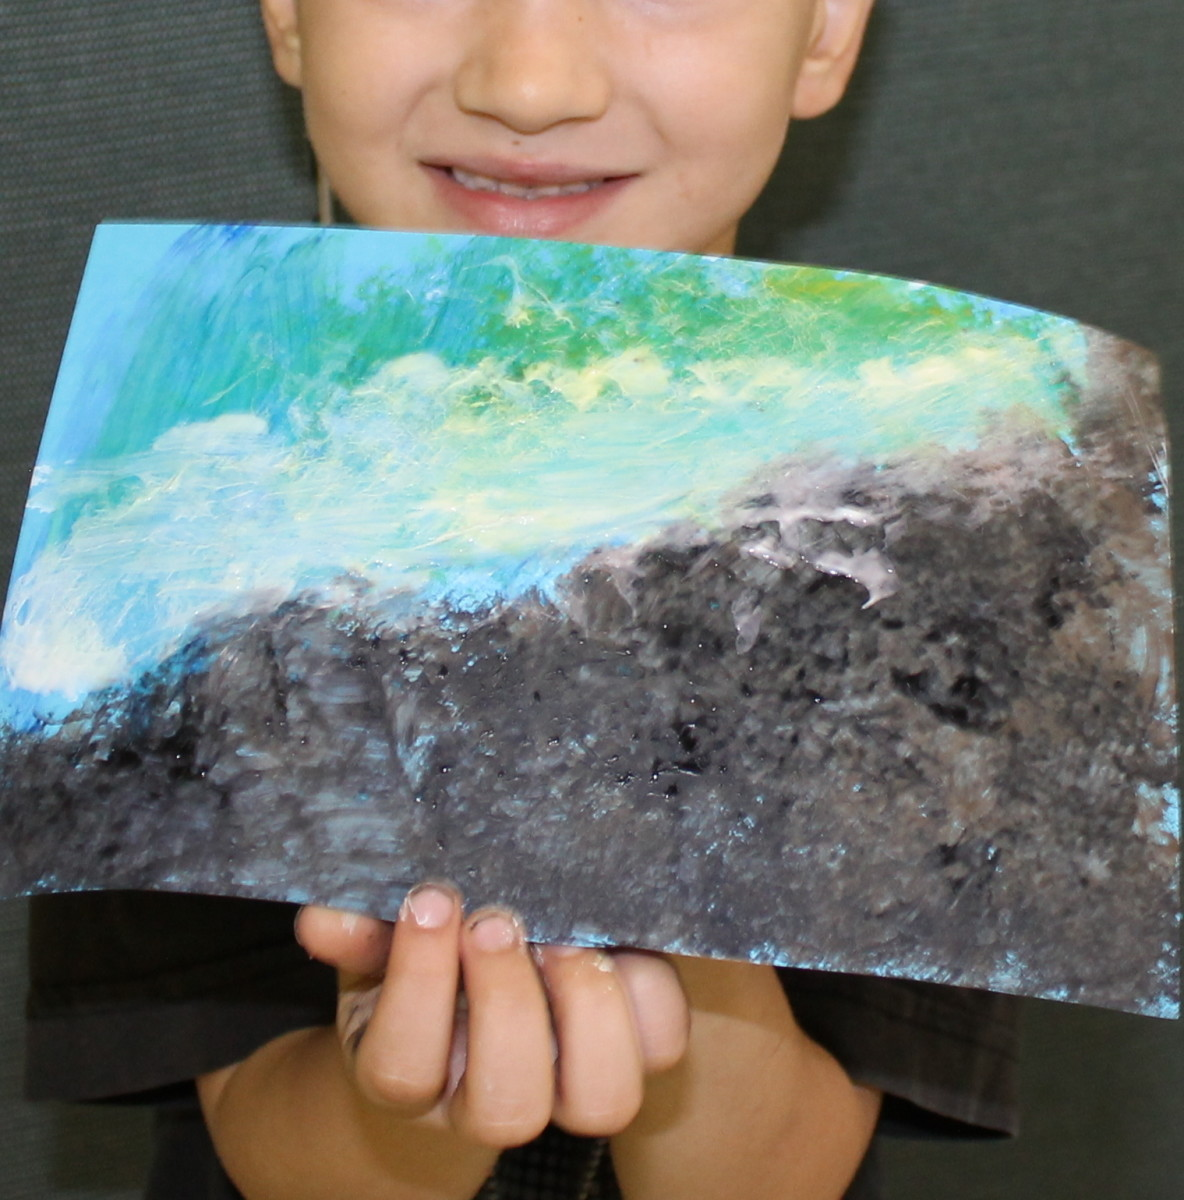 Winslow Homer-inspired textured seascape by a 5 year old